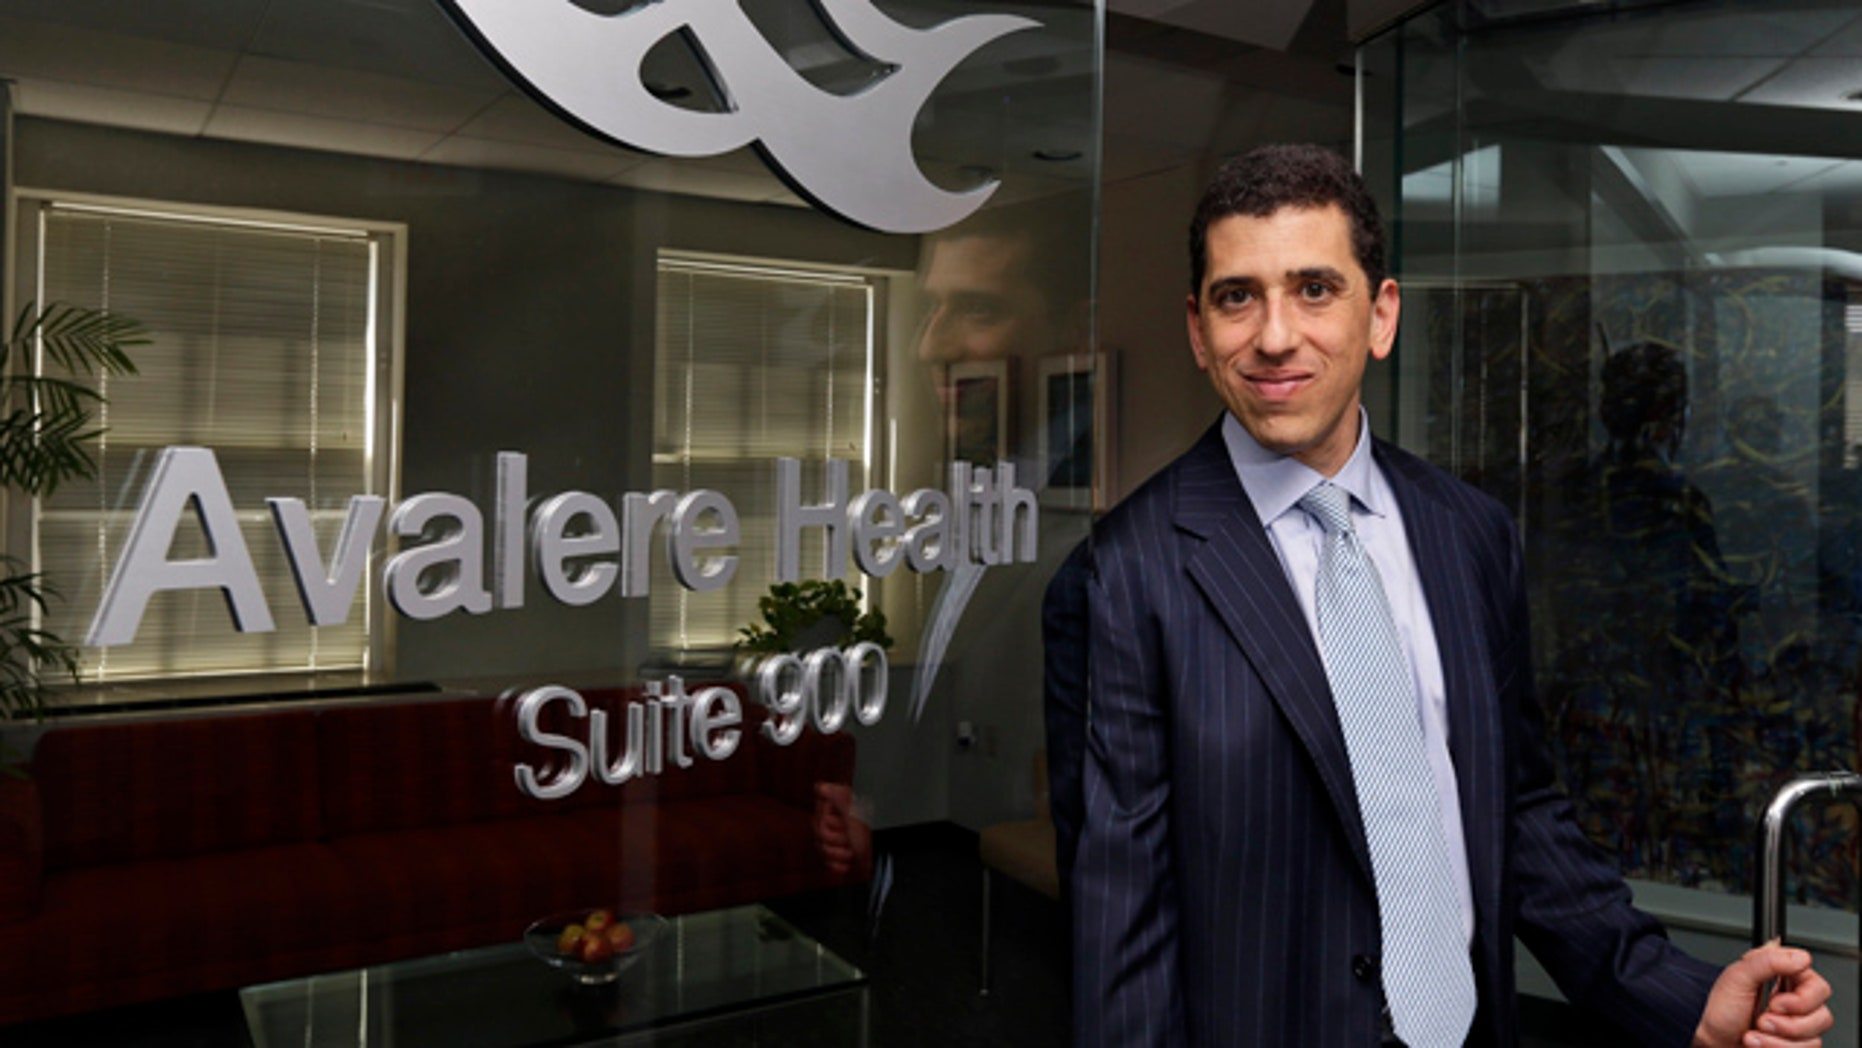 May 3, 2013: Daniel N. Mendelson, CEO of data analysis firm Avalere Health, which caters to the healthcare industry and government, poses for a photograph at their Washington office.